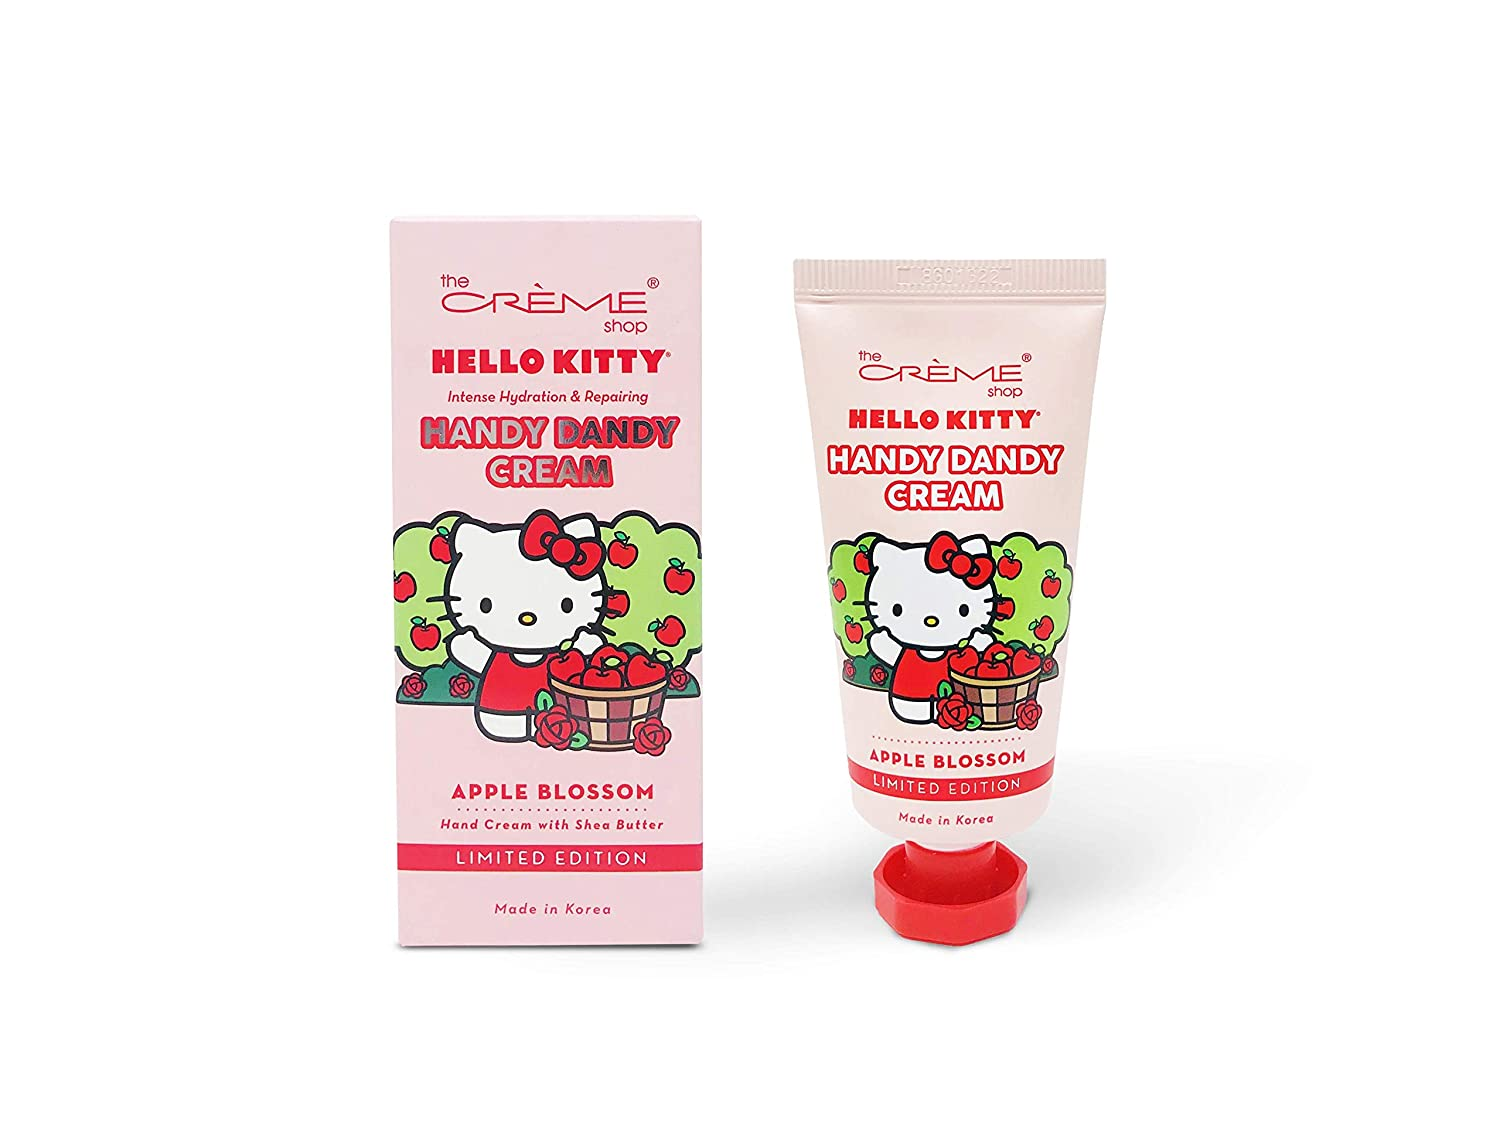 The Crème Shop Korean Cute Scented Pocket Portable Soothing Advanced Must-Have on-the-go - The Crème Shop x Sanrio Hello Kitty Handy Dandy Cream(Apple Blossom)